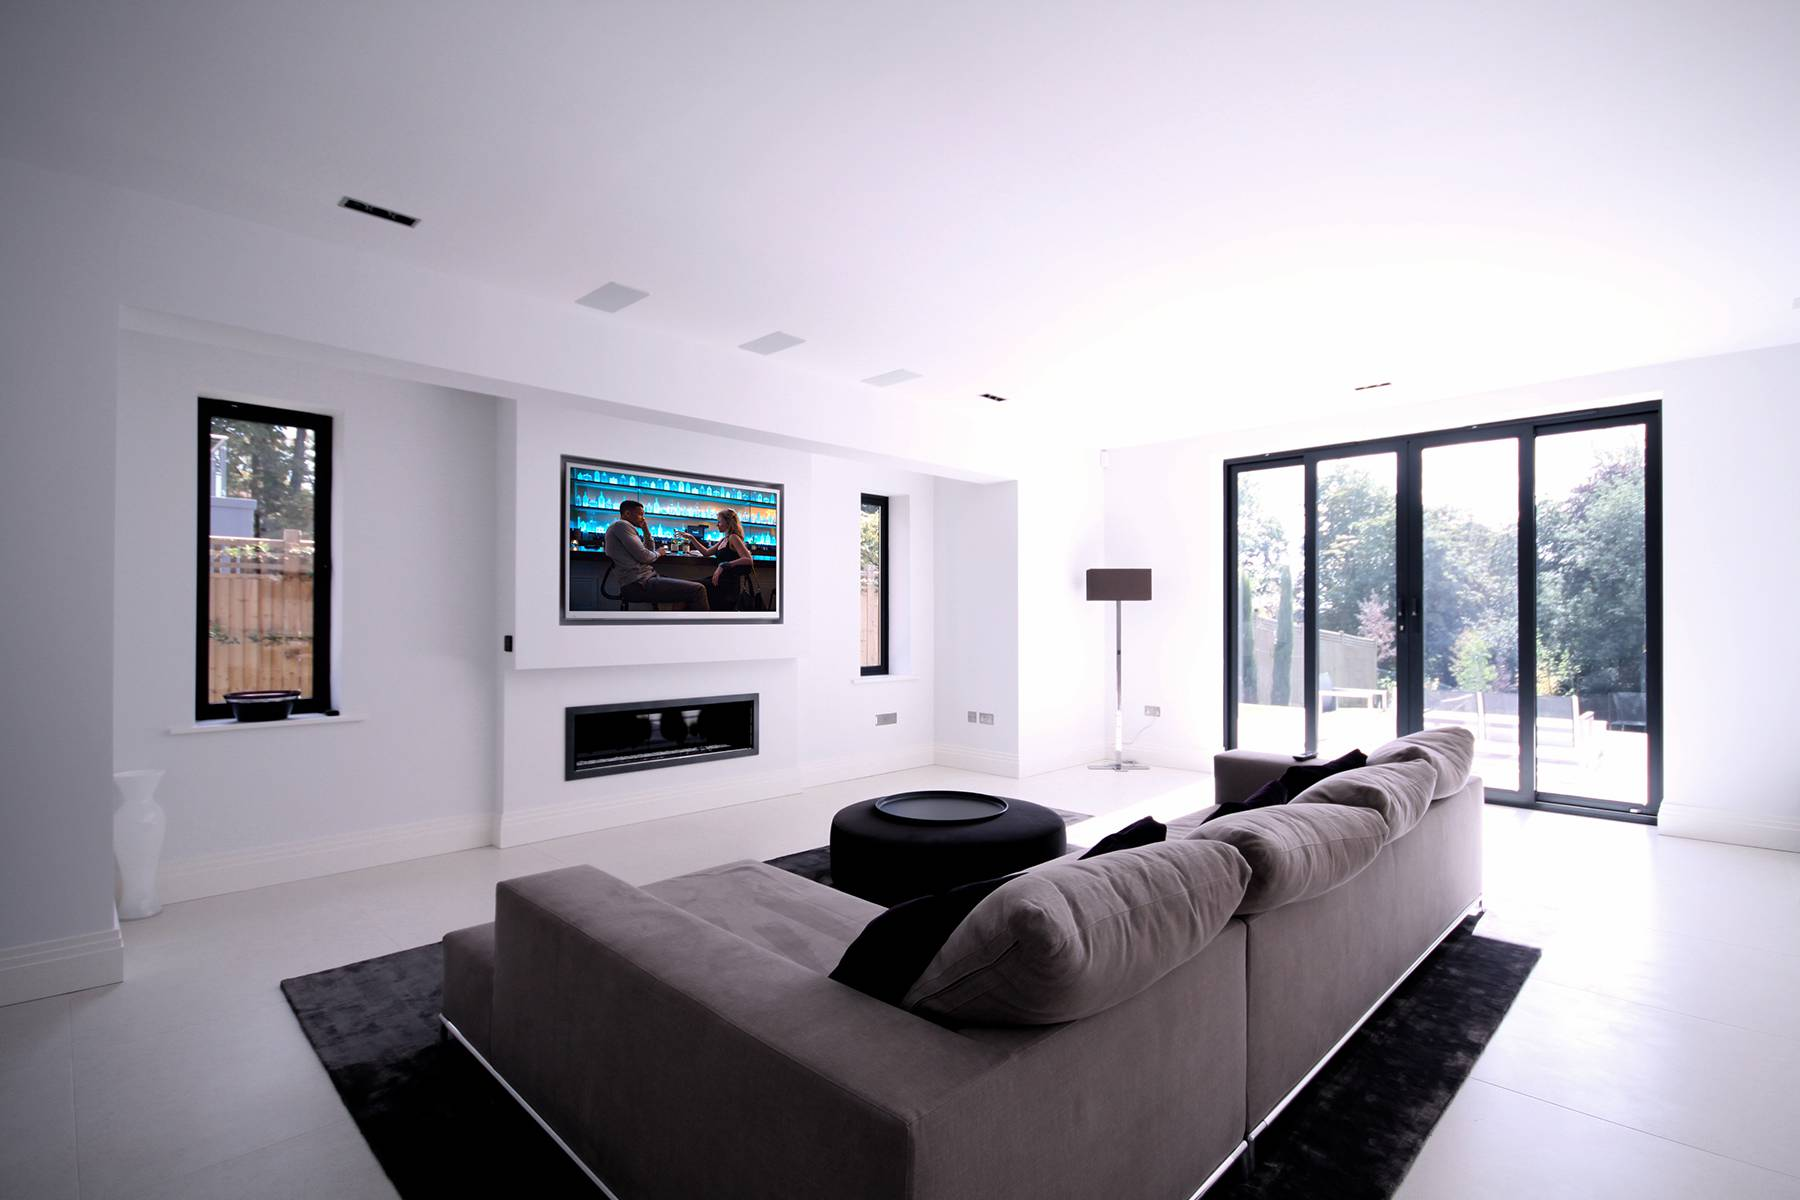 Field Cresent Living Room Surround Sound TV